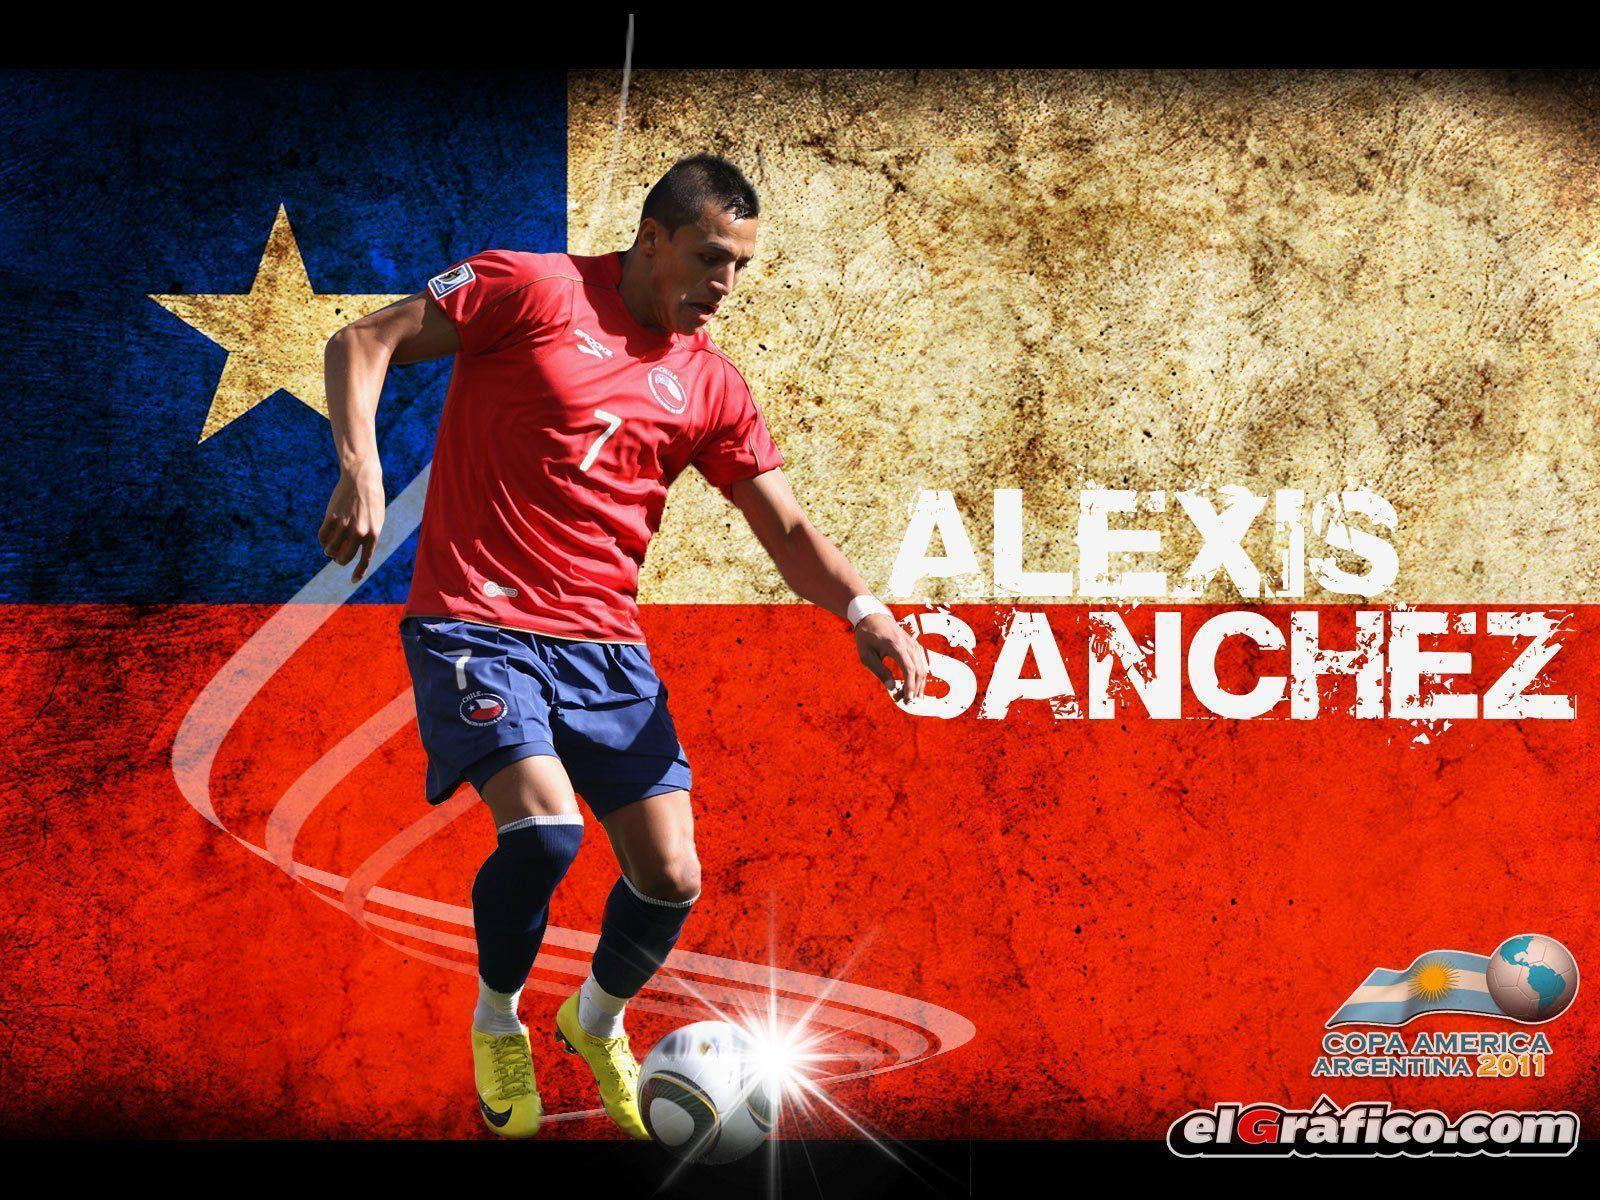 CHILE soccer (33) wallpaper | 1600x1200 | 365042 | WallpaperUP